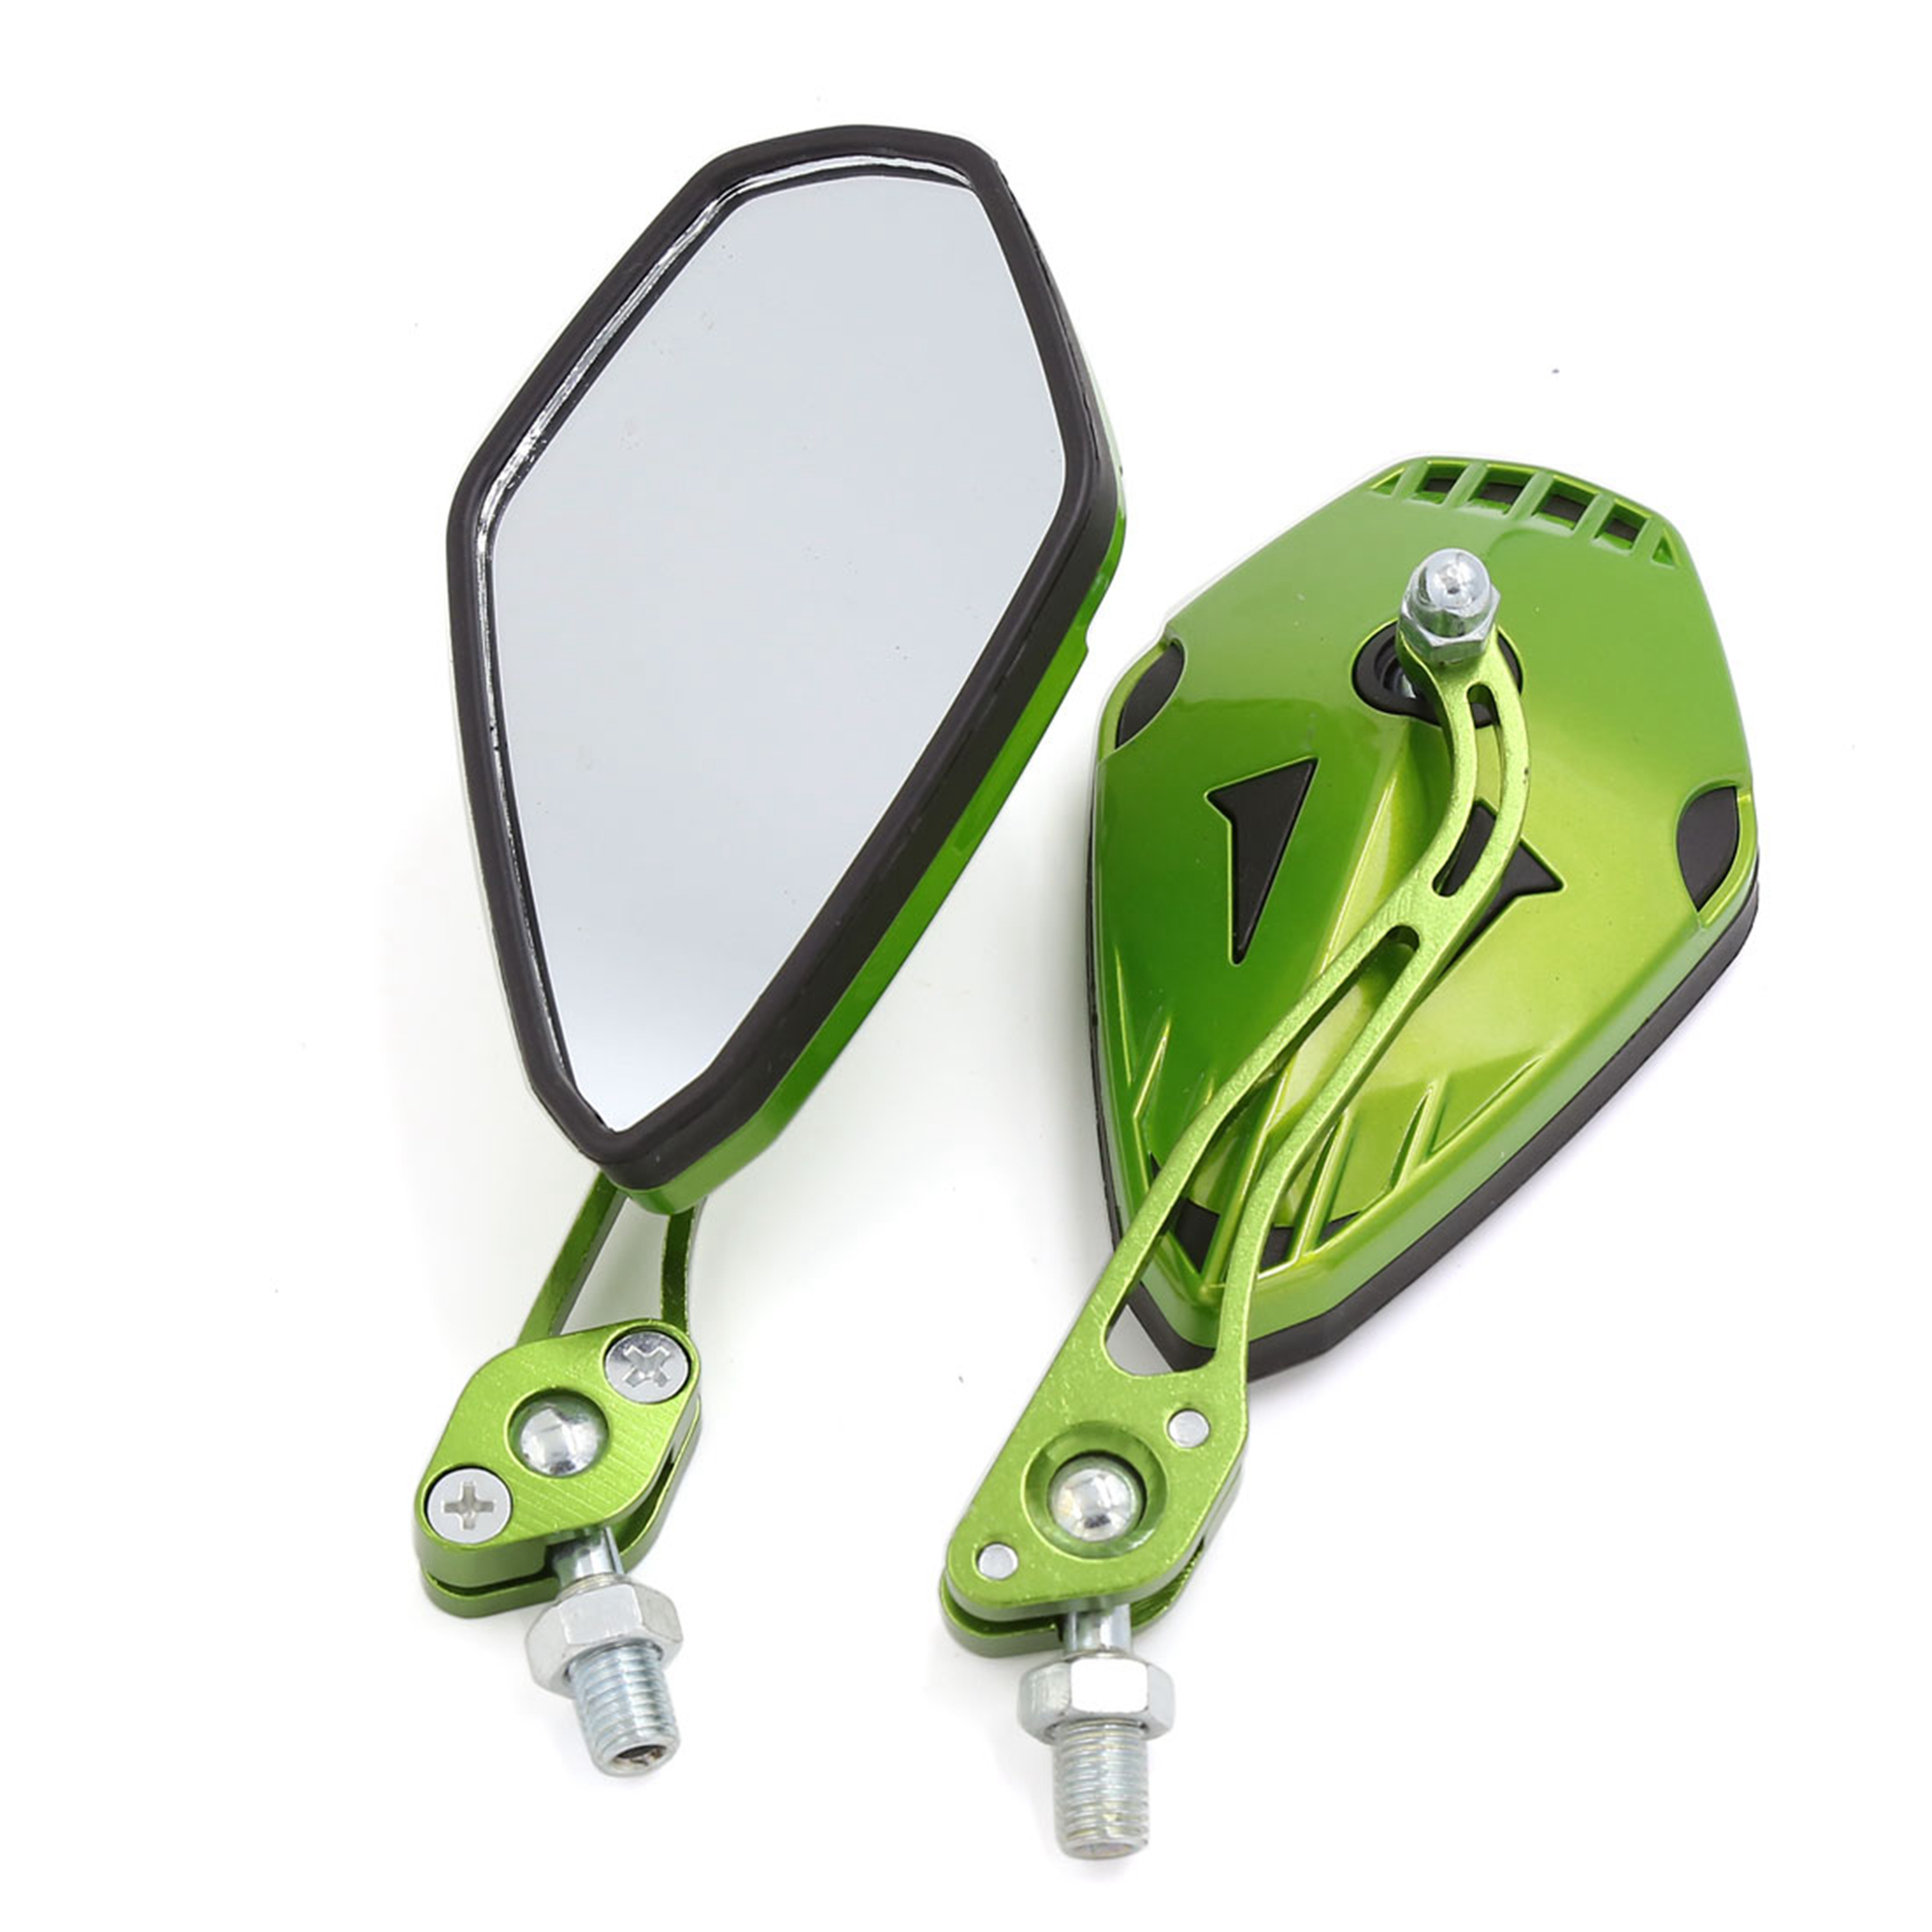 2 Pcs Universal 10mm Thread Dia Left Right Side Rear View Mirrors Green for Motorcycle